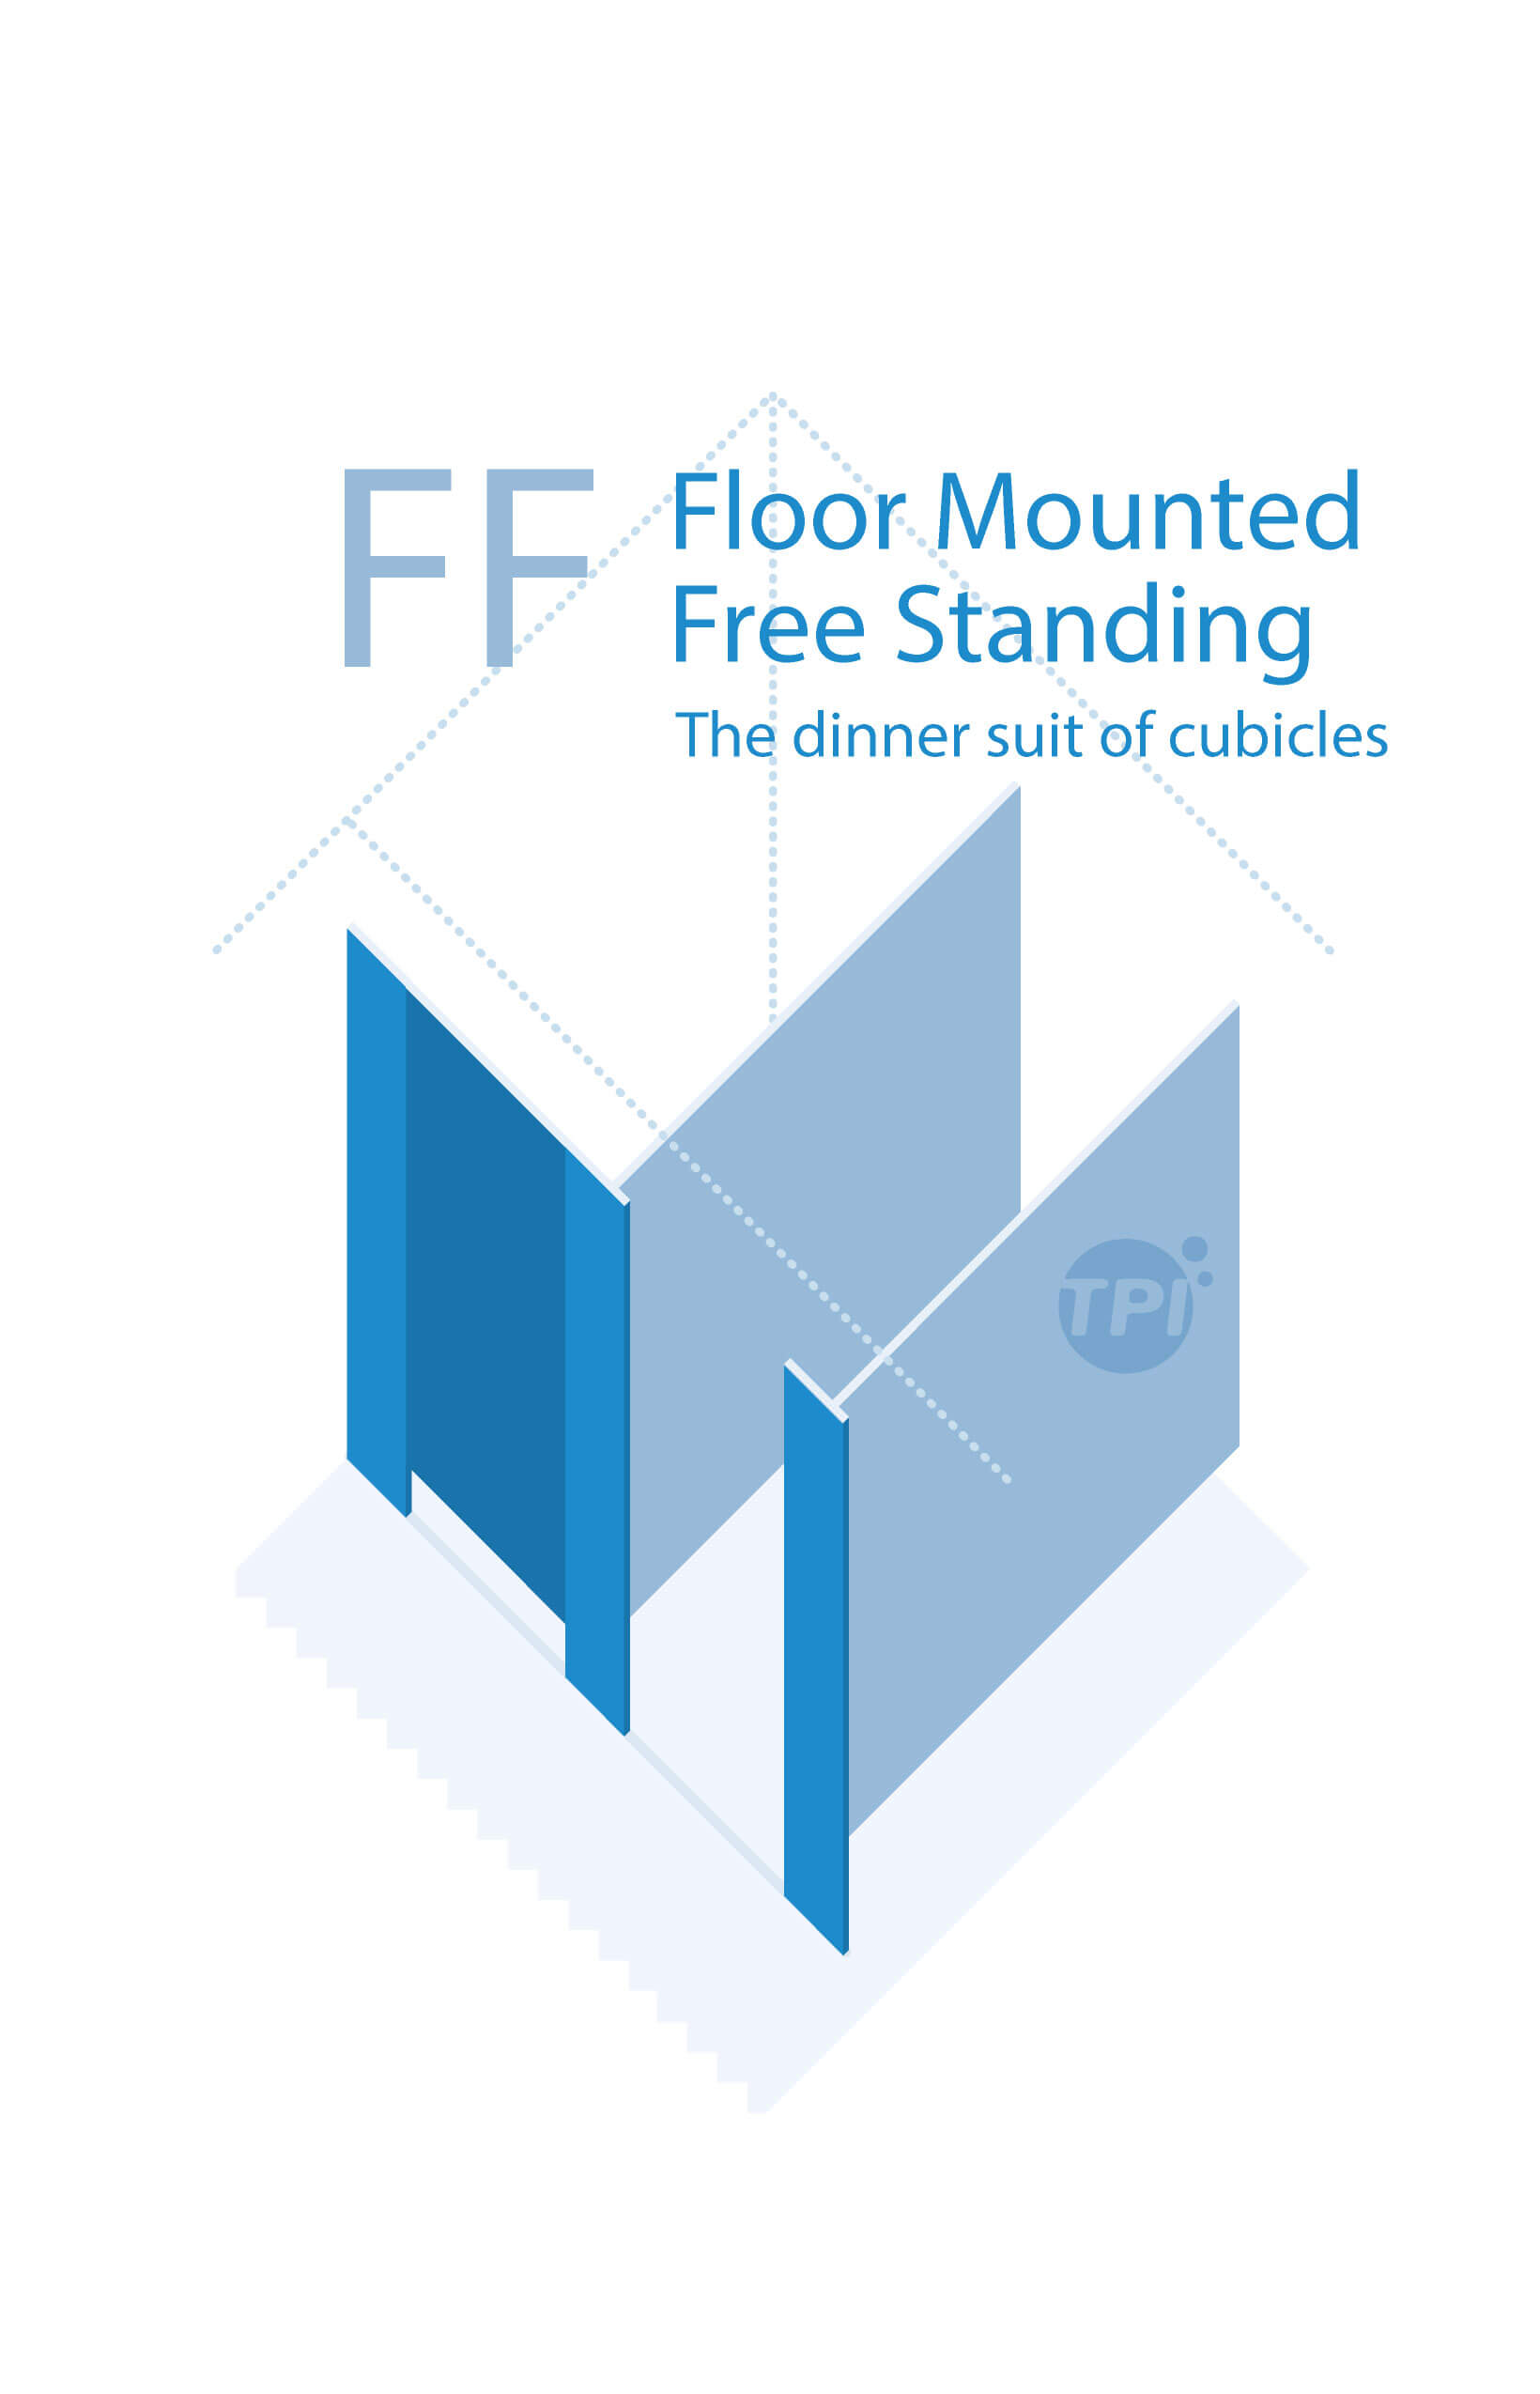 1640x2549 Cubicle Floor Mounted Free Standing (Ff) Tpi Commercial Joinery